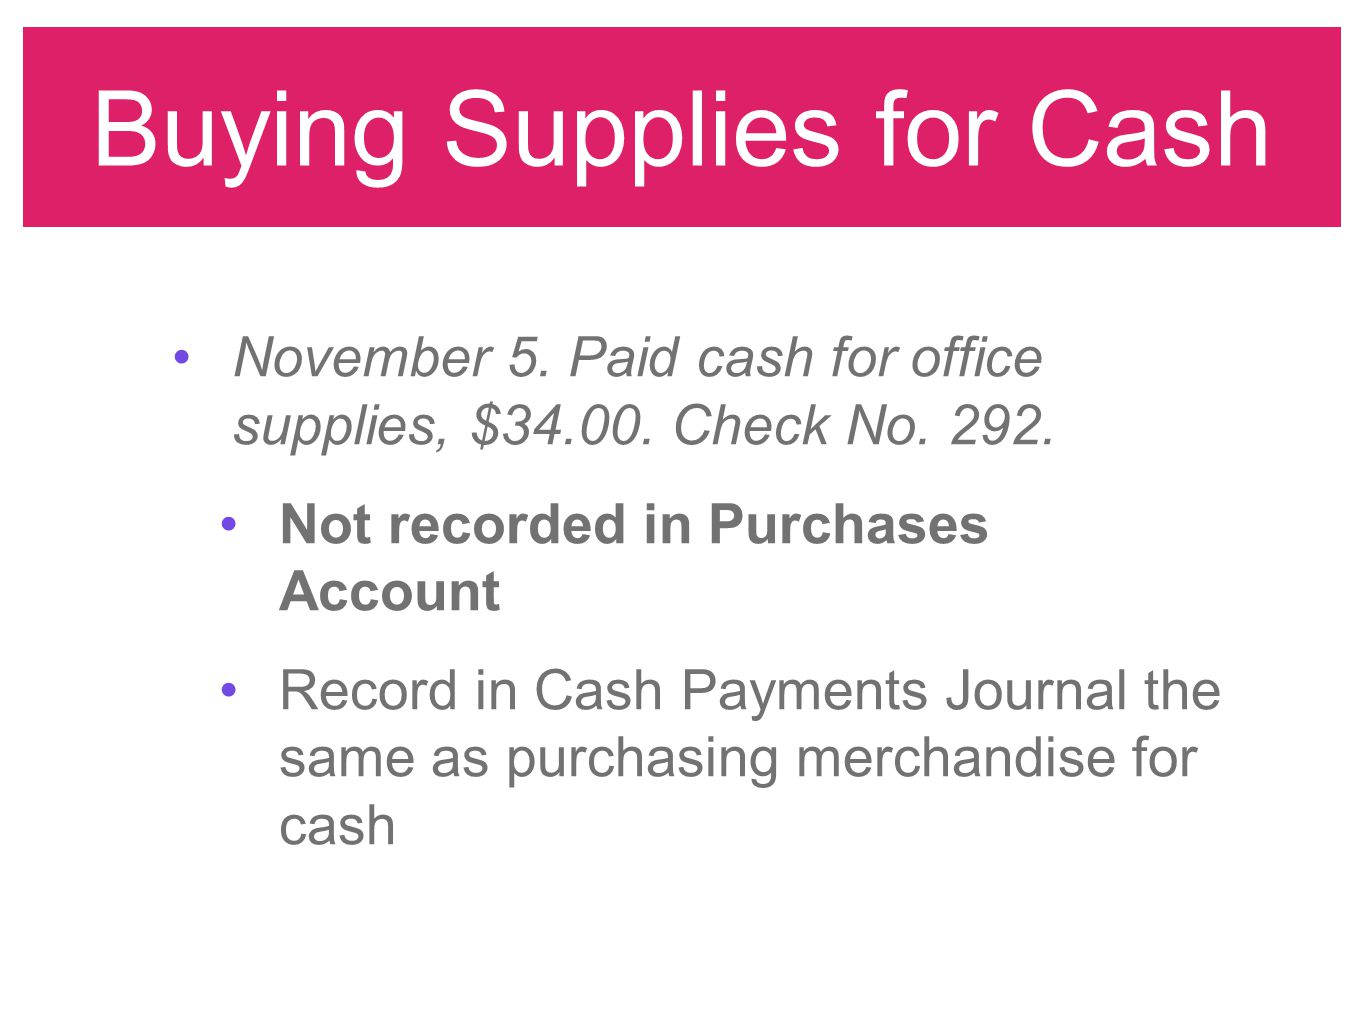 Buying Supplies for Cash November 5. Paid cash for office supplies, $34.00. Check No. 292. Not recorded in Purchases Account Record in Cash Payments J